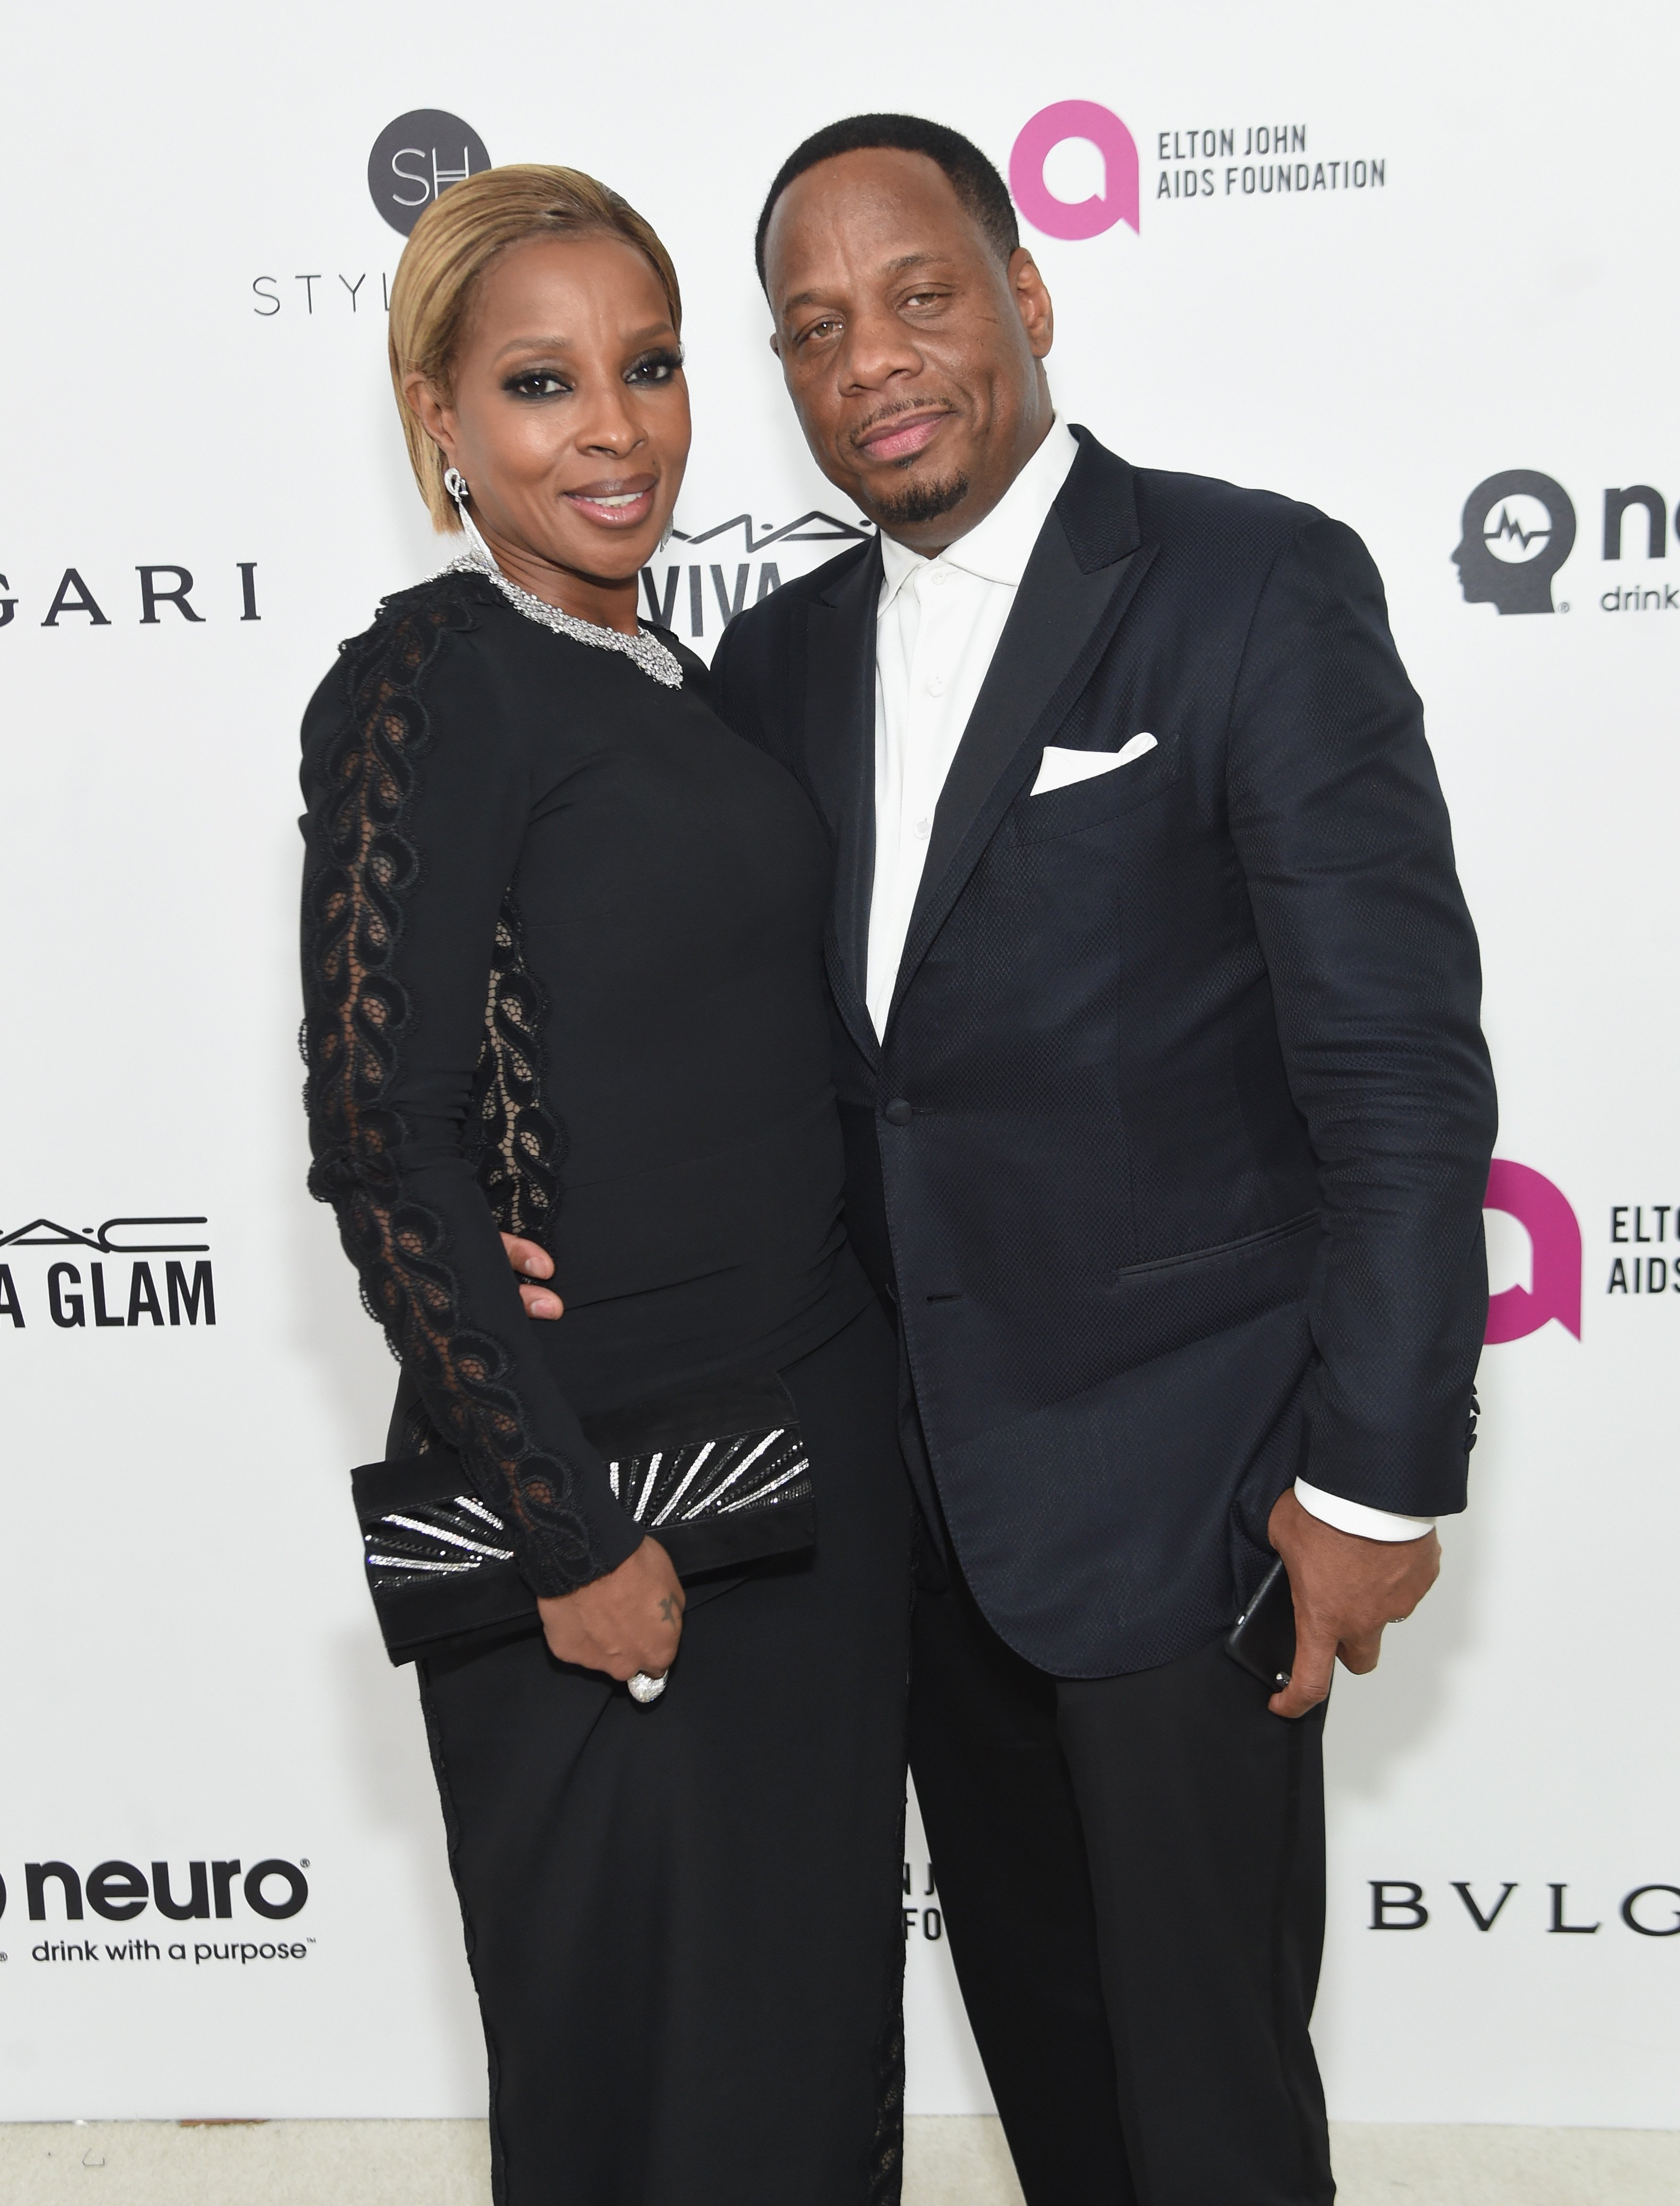 Mary J. Blige & Kendu Isaacs in West Hollywood, California on Feb. 28, 2016. | Photo: Getty Images